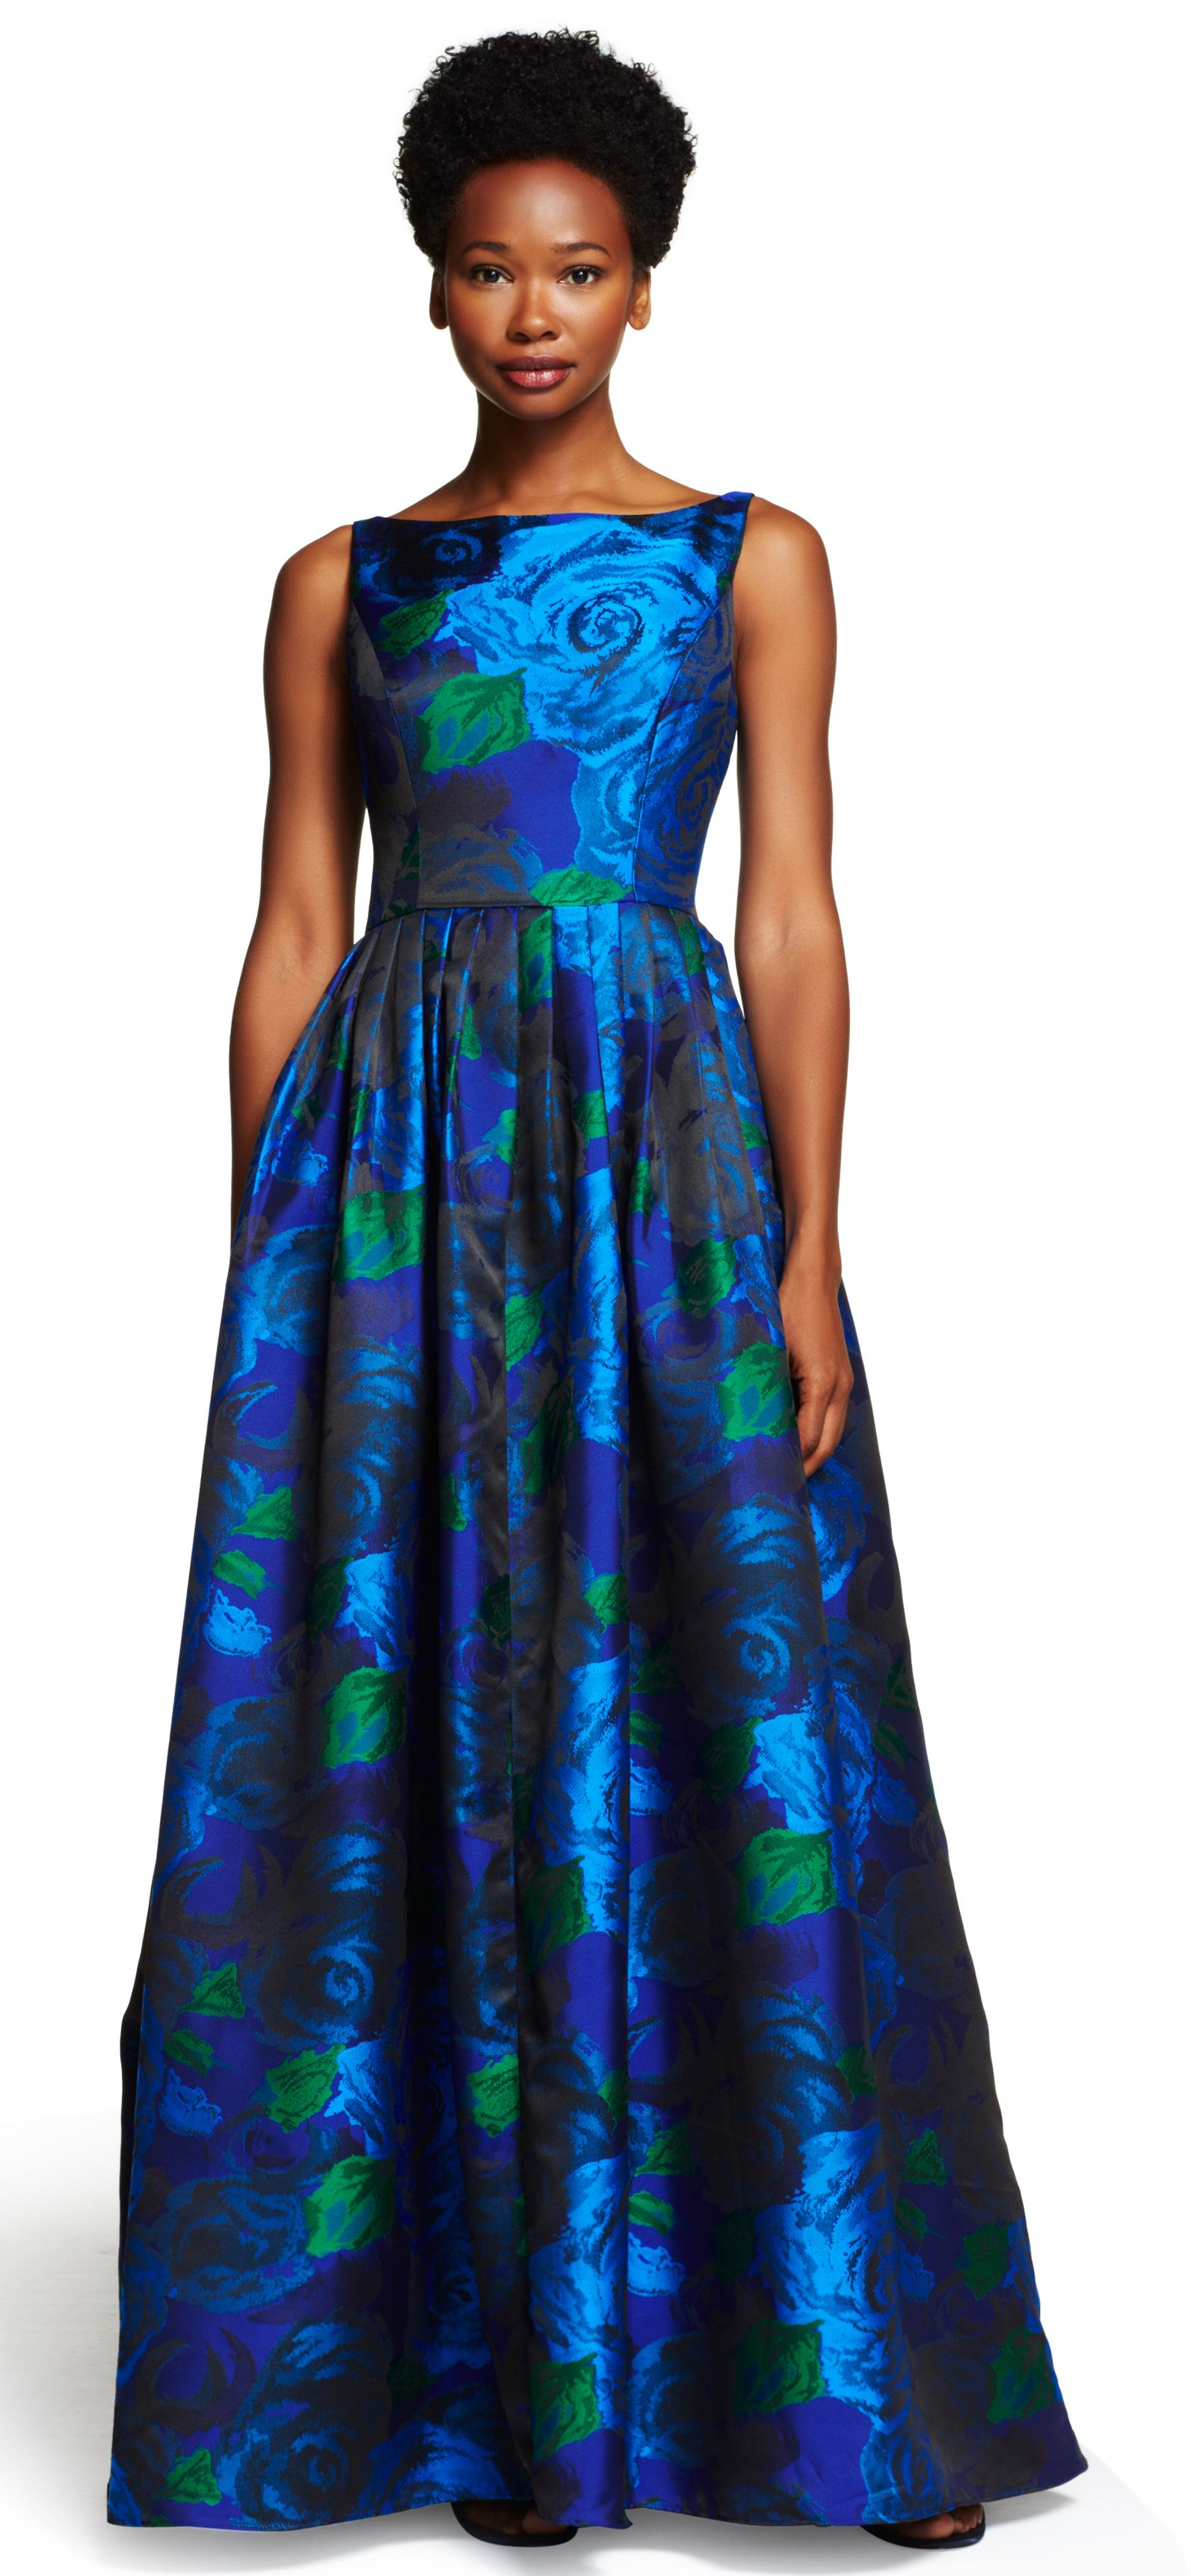 17 Best images about Holiday Gala Dresses 2015 on Pinterest ...